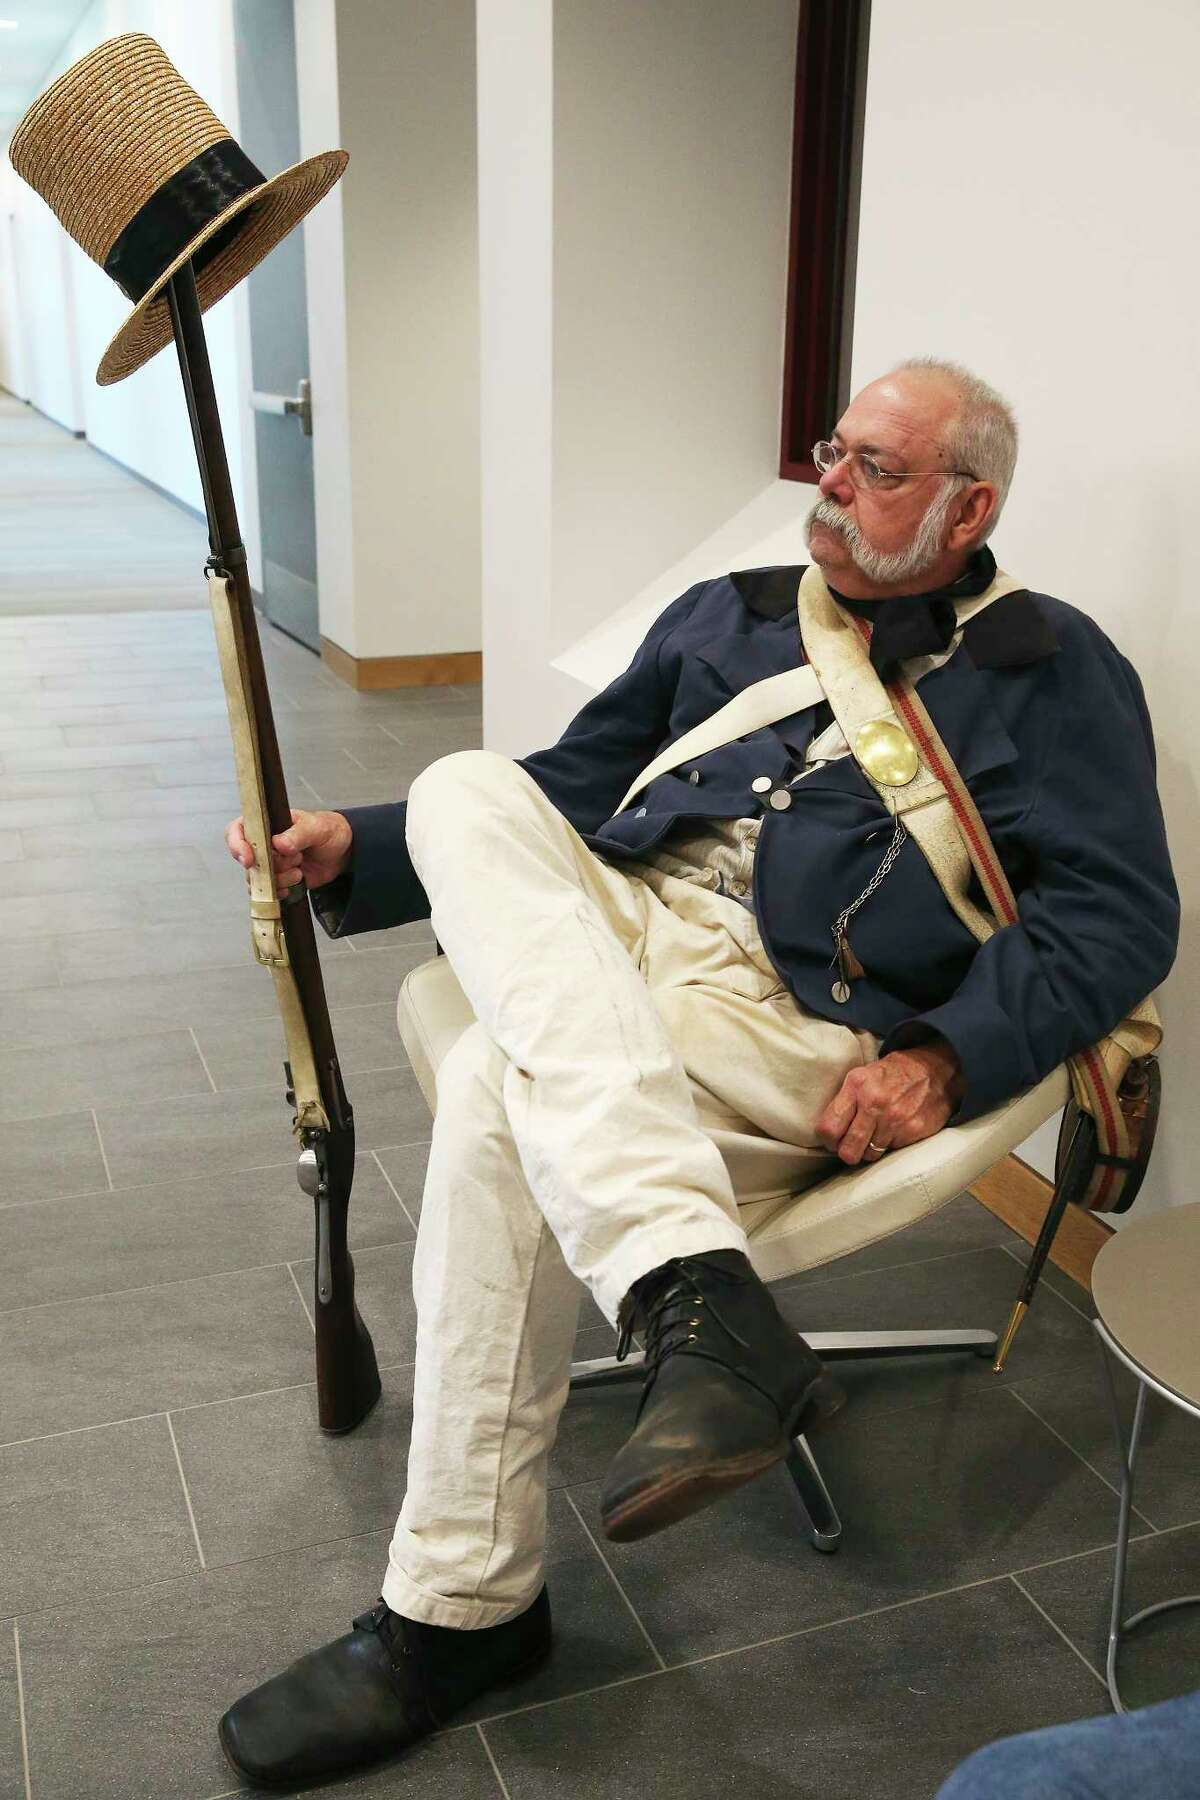 Kent Palma, with the Alamo Living Historians, waits with his gear as Texas A&M and the Alamo present